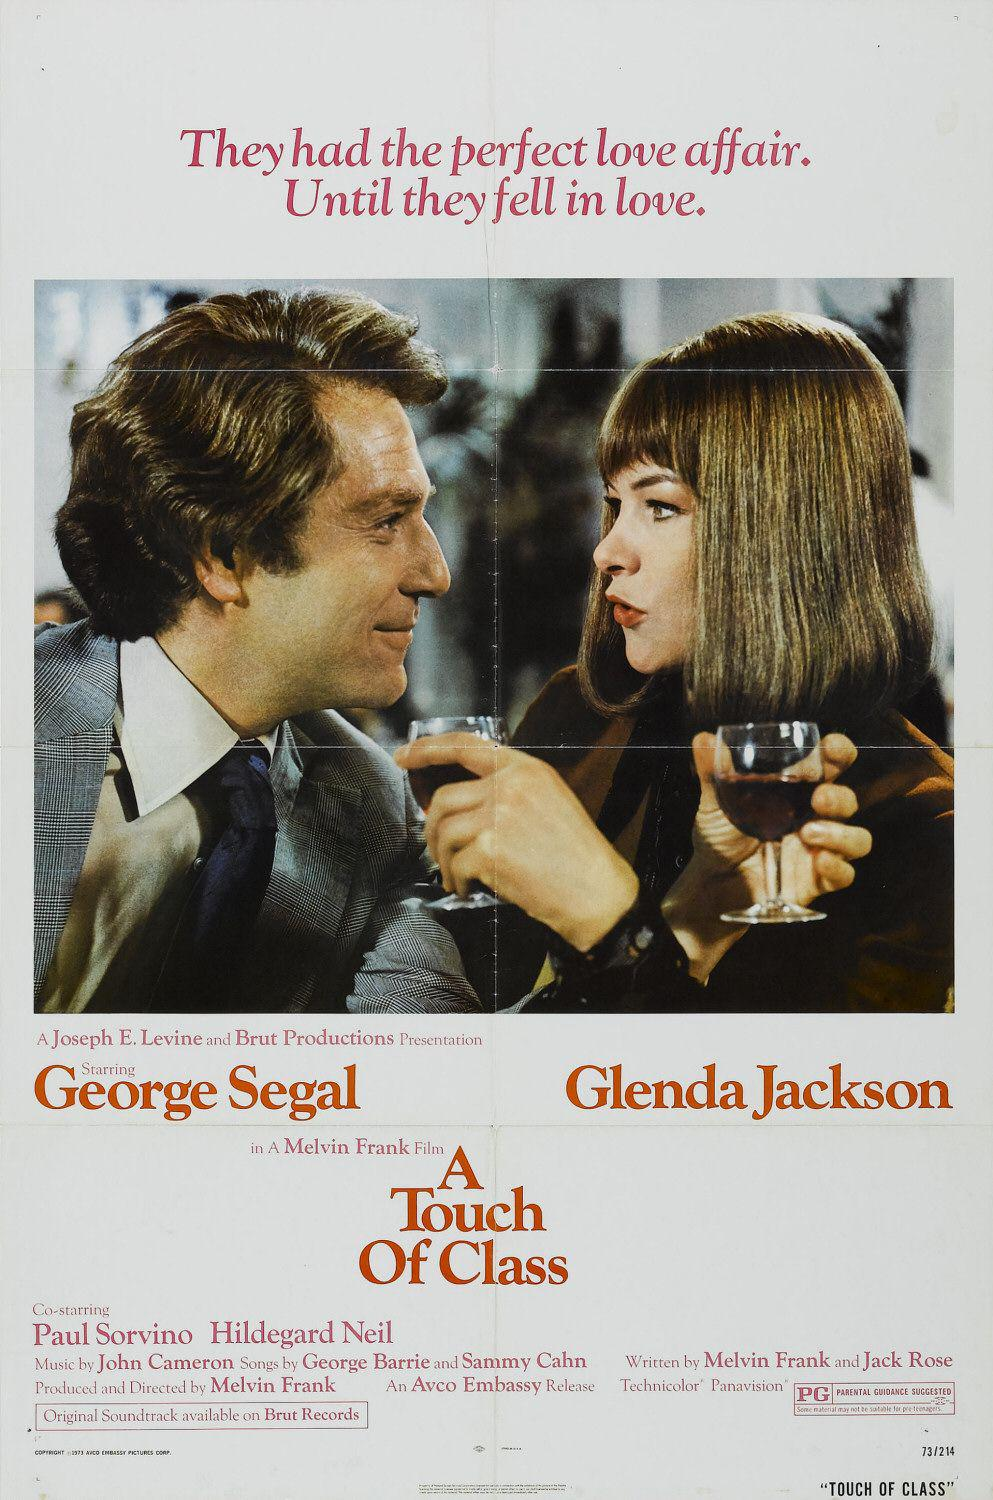 Touch of class - They had the perfect Love affair. Until they fell in Love.- George Segal - Glenda Jackson